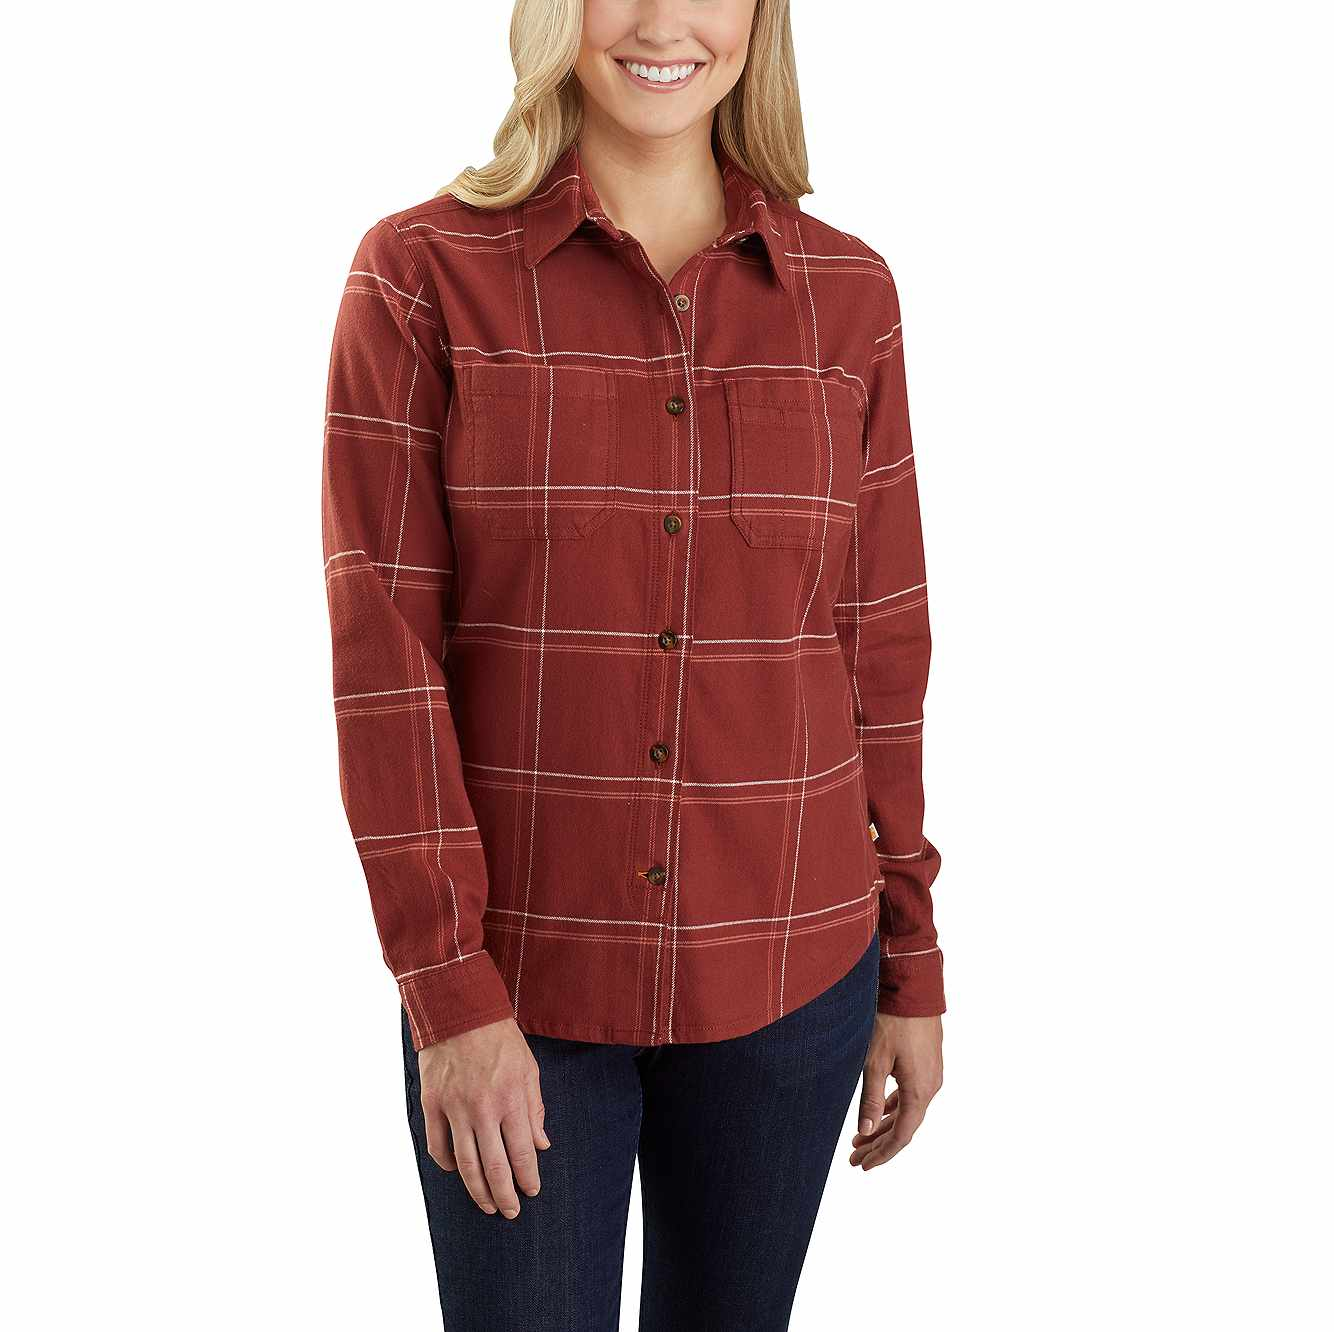 Picture of Carhartt® Rugged Flex® Relaxed Fit Flannel Plaid Shirt in Redwood